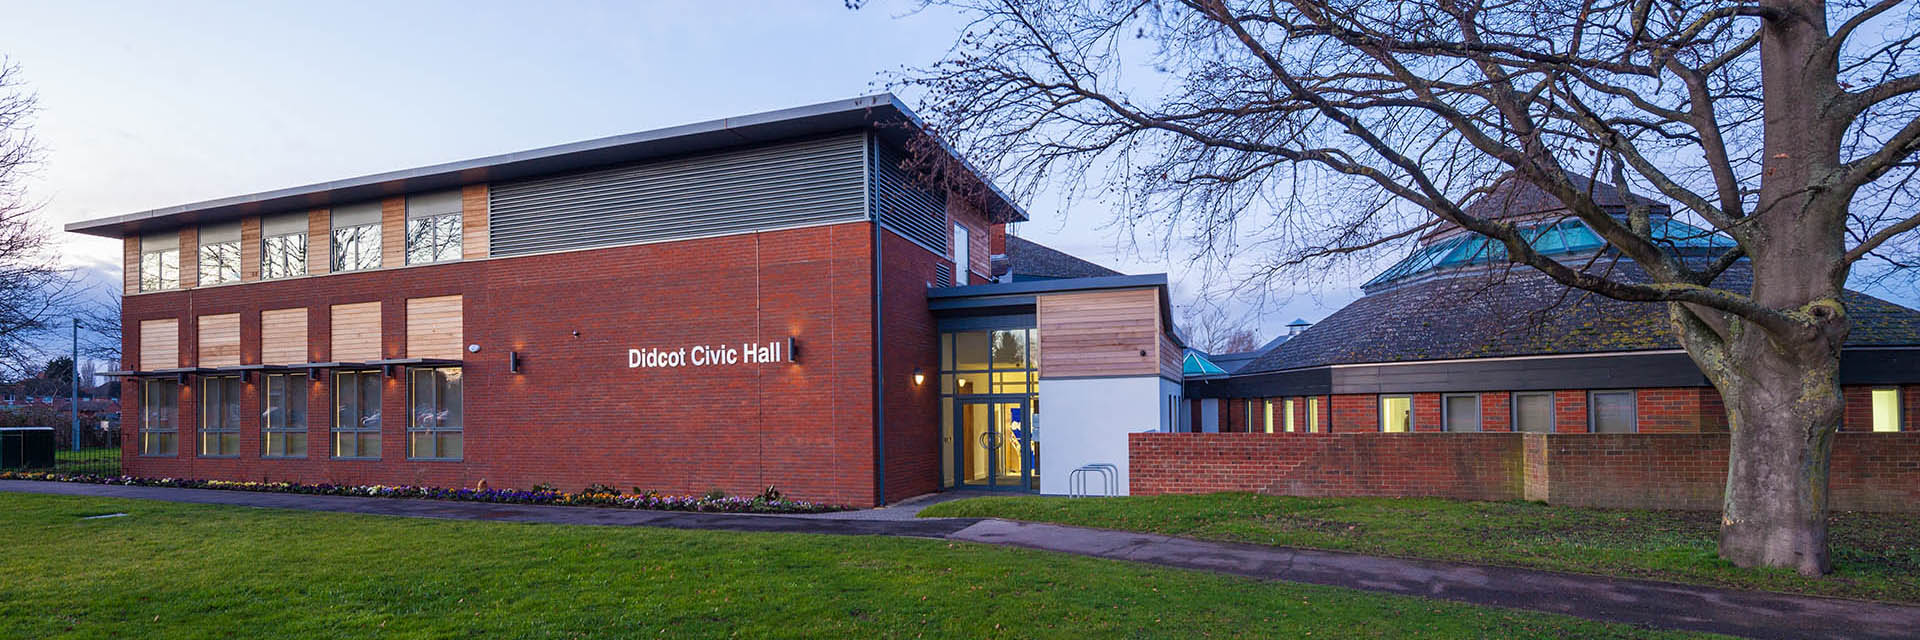 Didcot Civic Hall